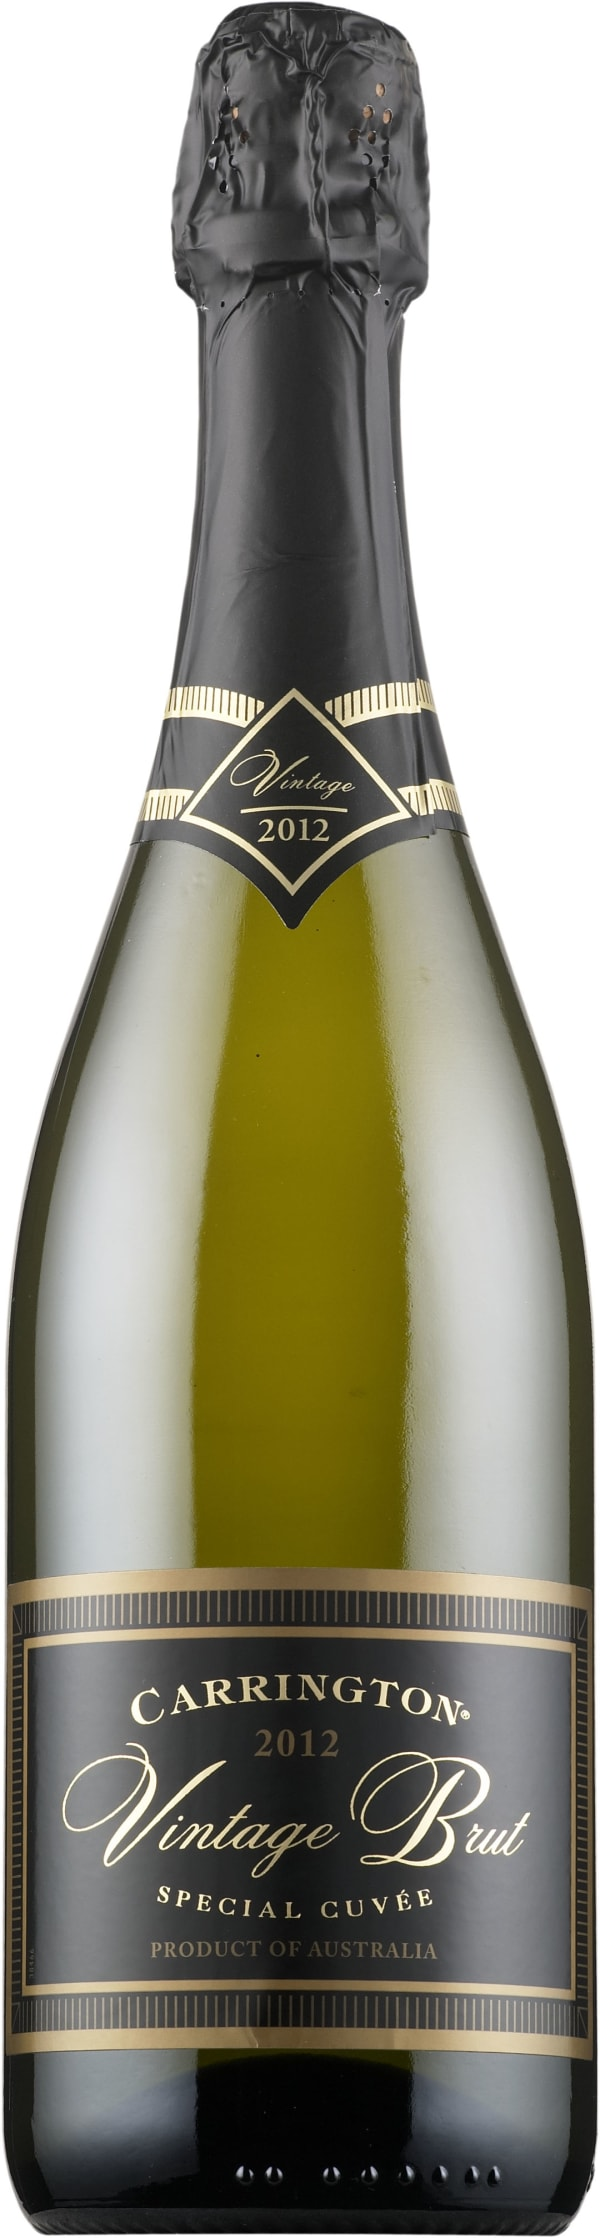 Carrington Vintage Brut 2015